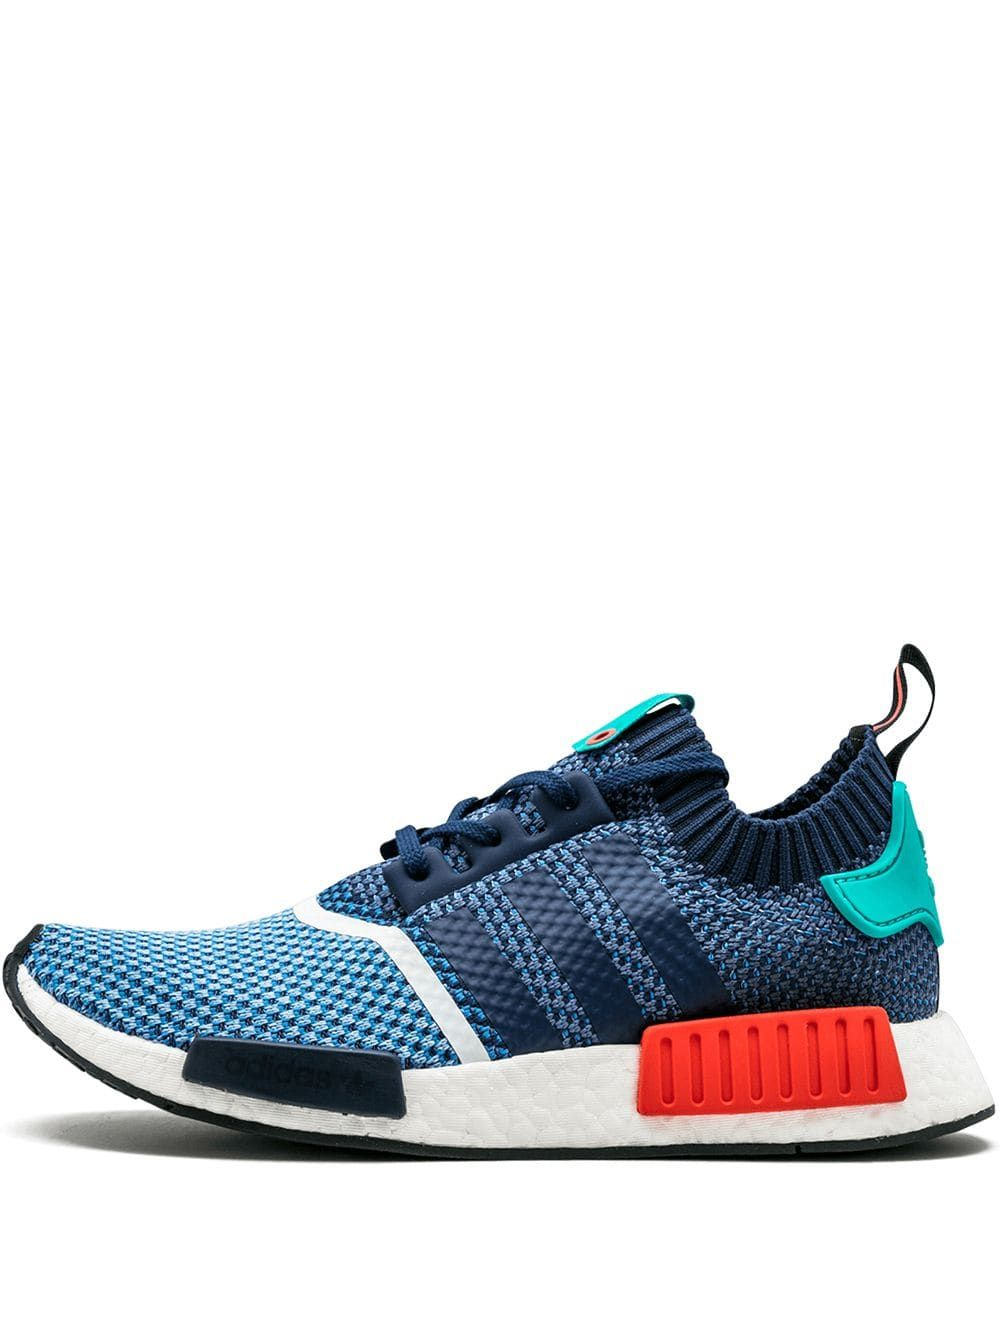 Two New adidas NMD R_1 Camo Styles Released This Week End